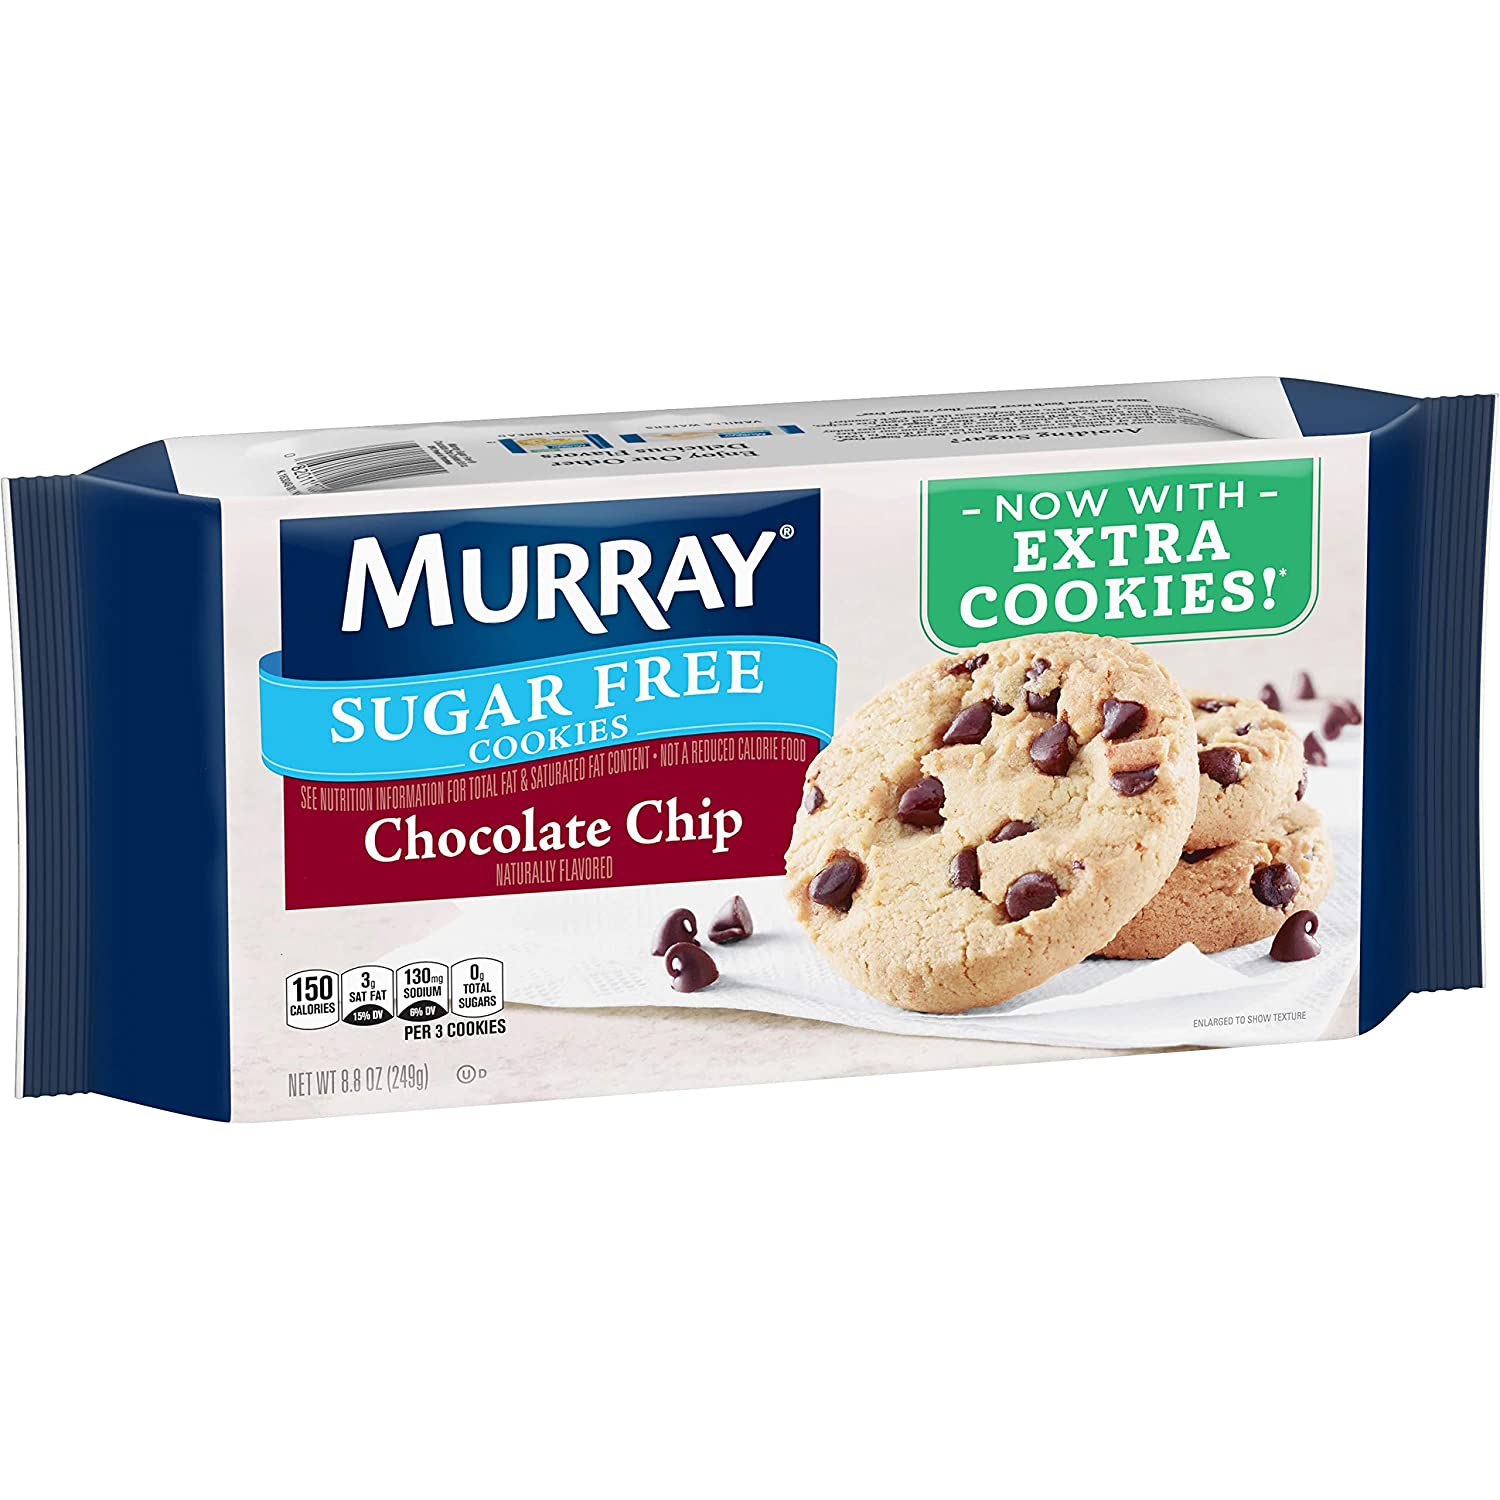 Murray Sugar Free Cookies, Chocolate Chip,